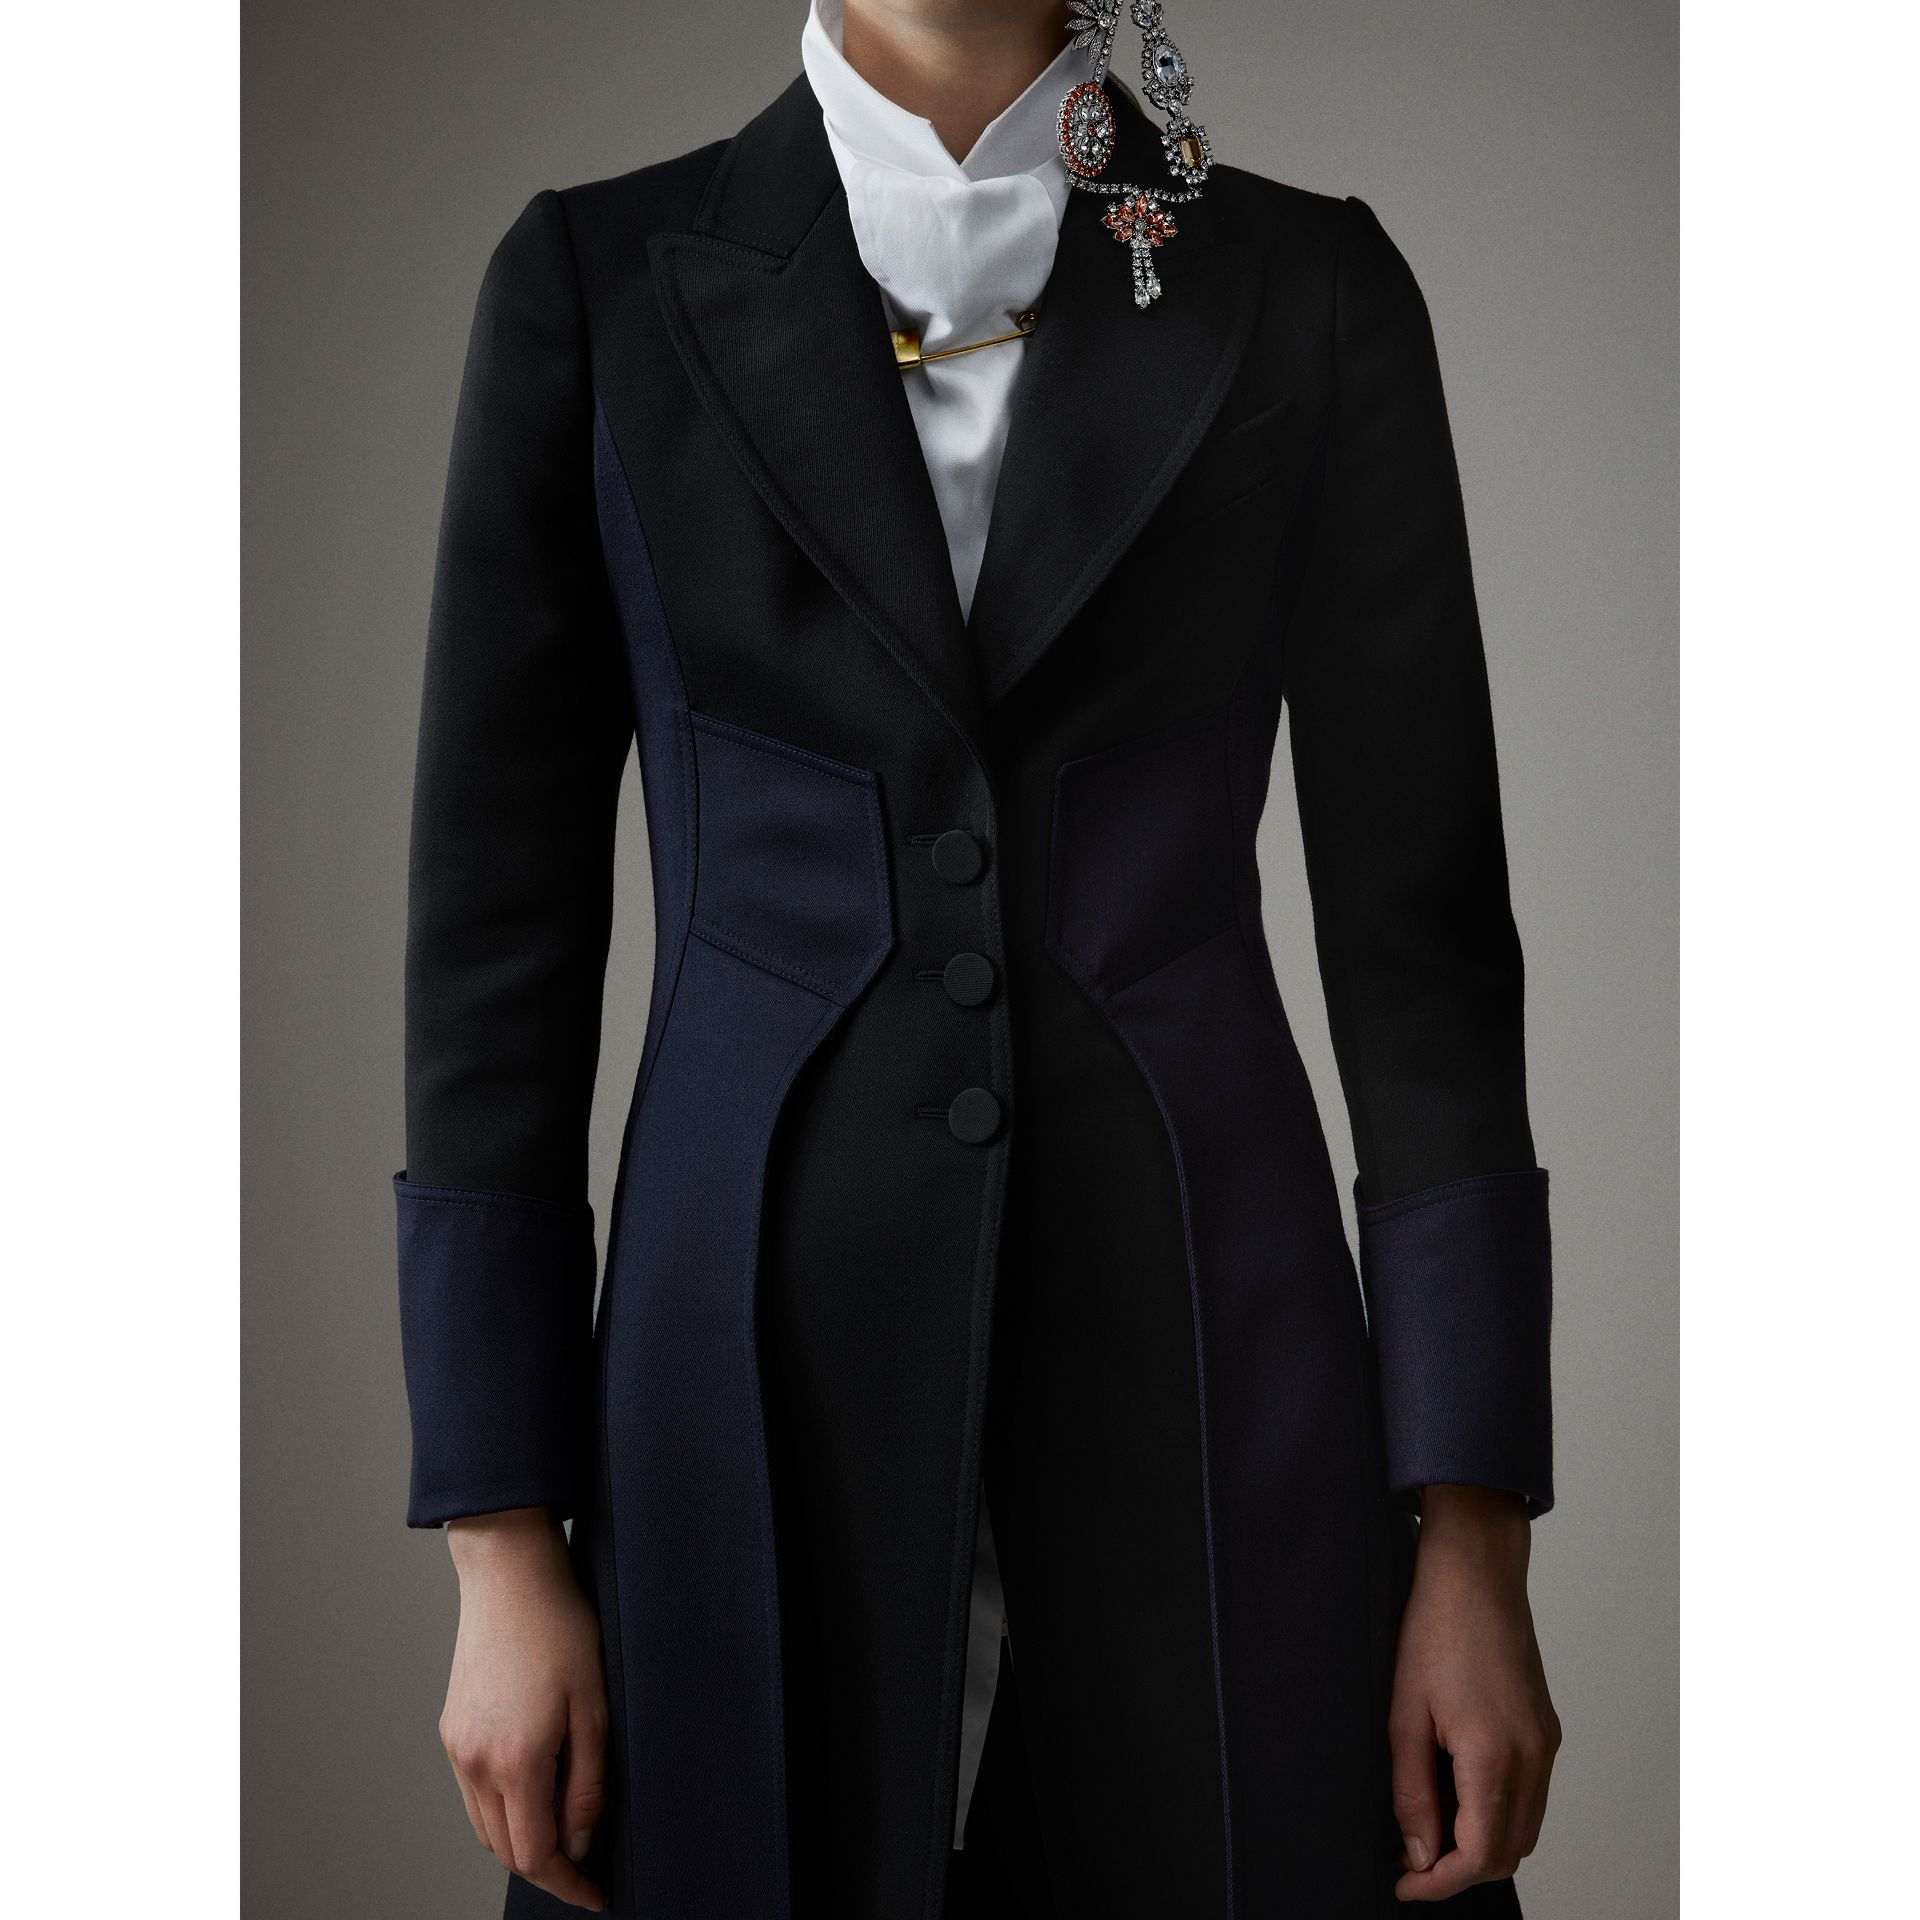 Wool Dressage Coat in Black - Women | Burberry - gallery image 1